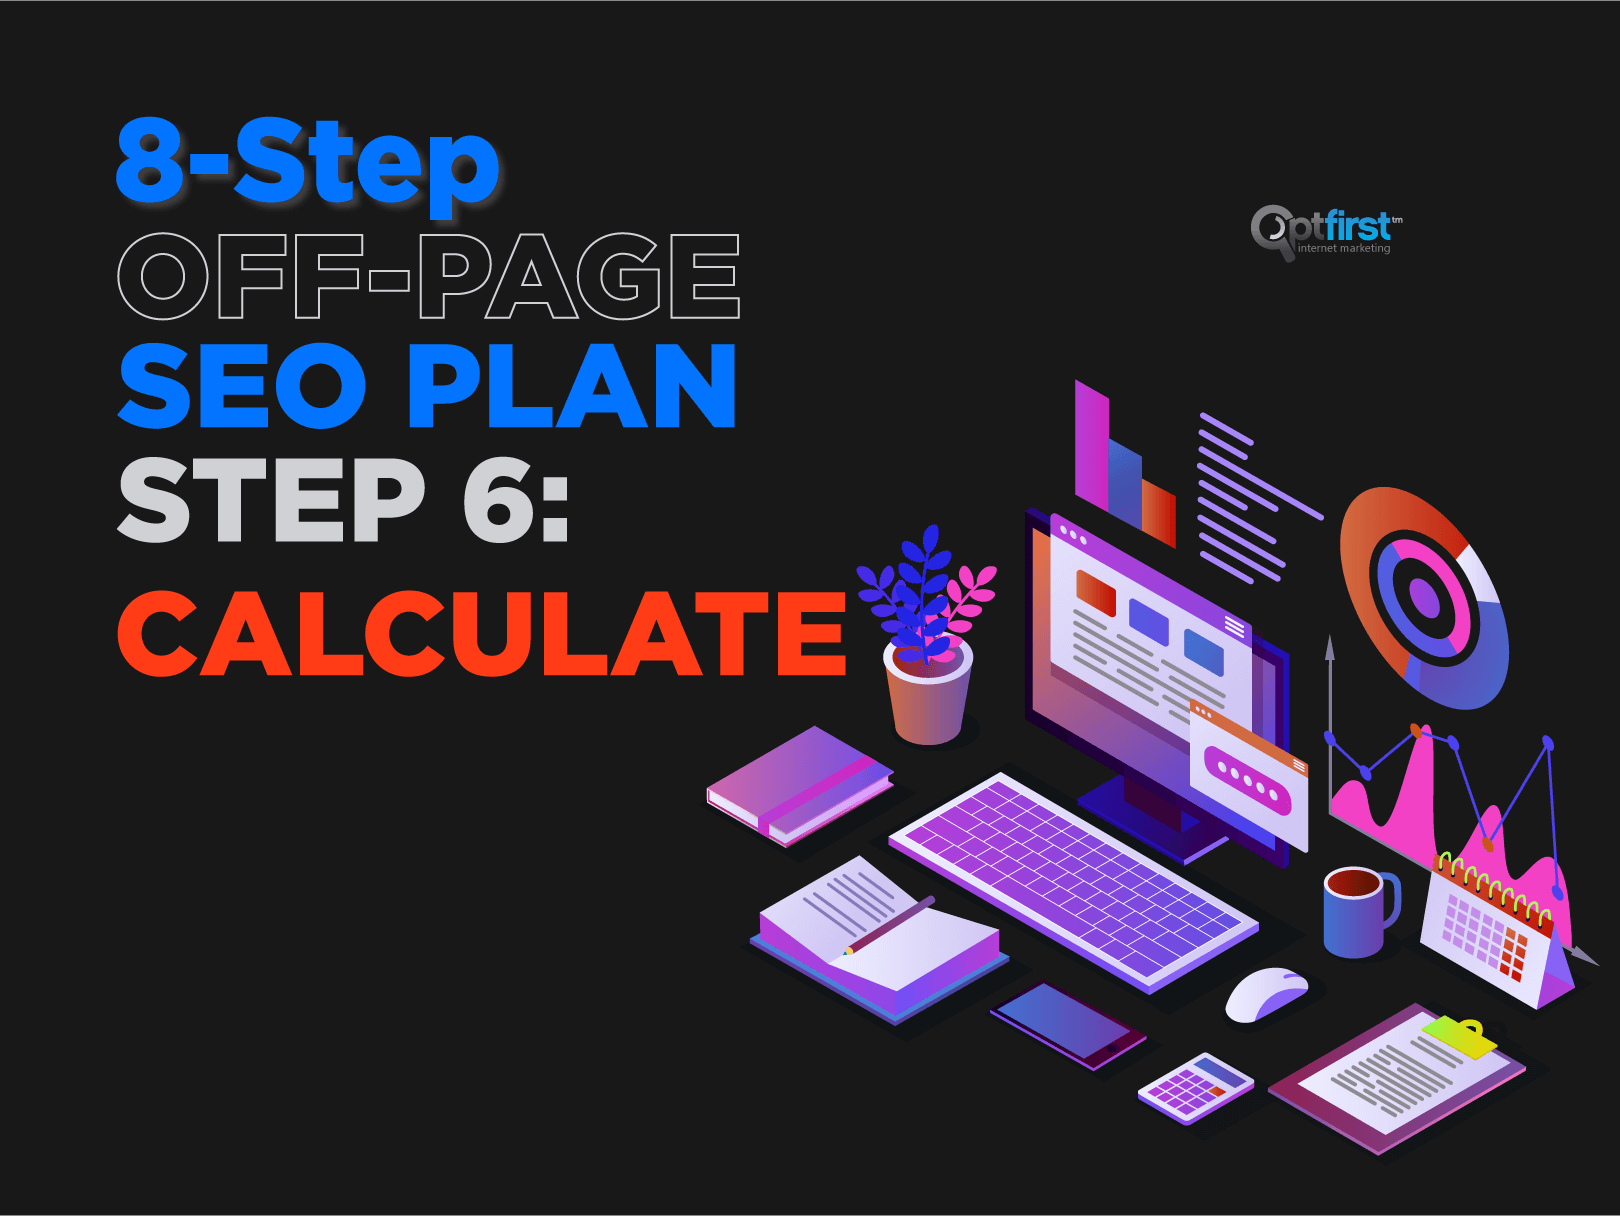 8-Step Off-Page SEO Plan, Step 6: Calculate